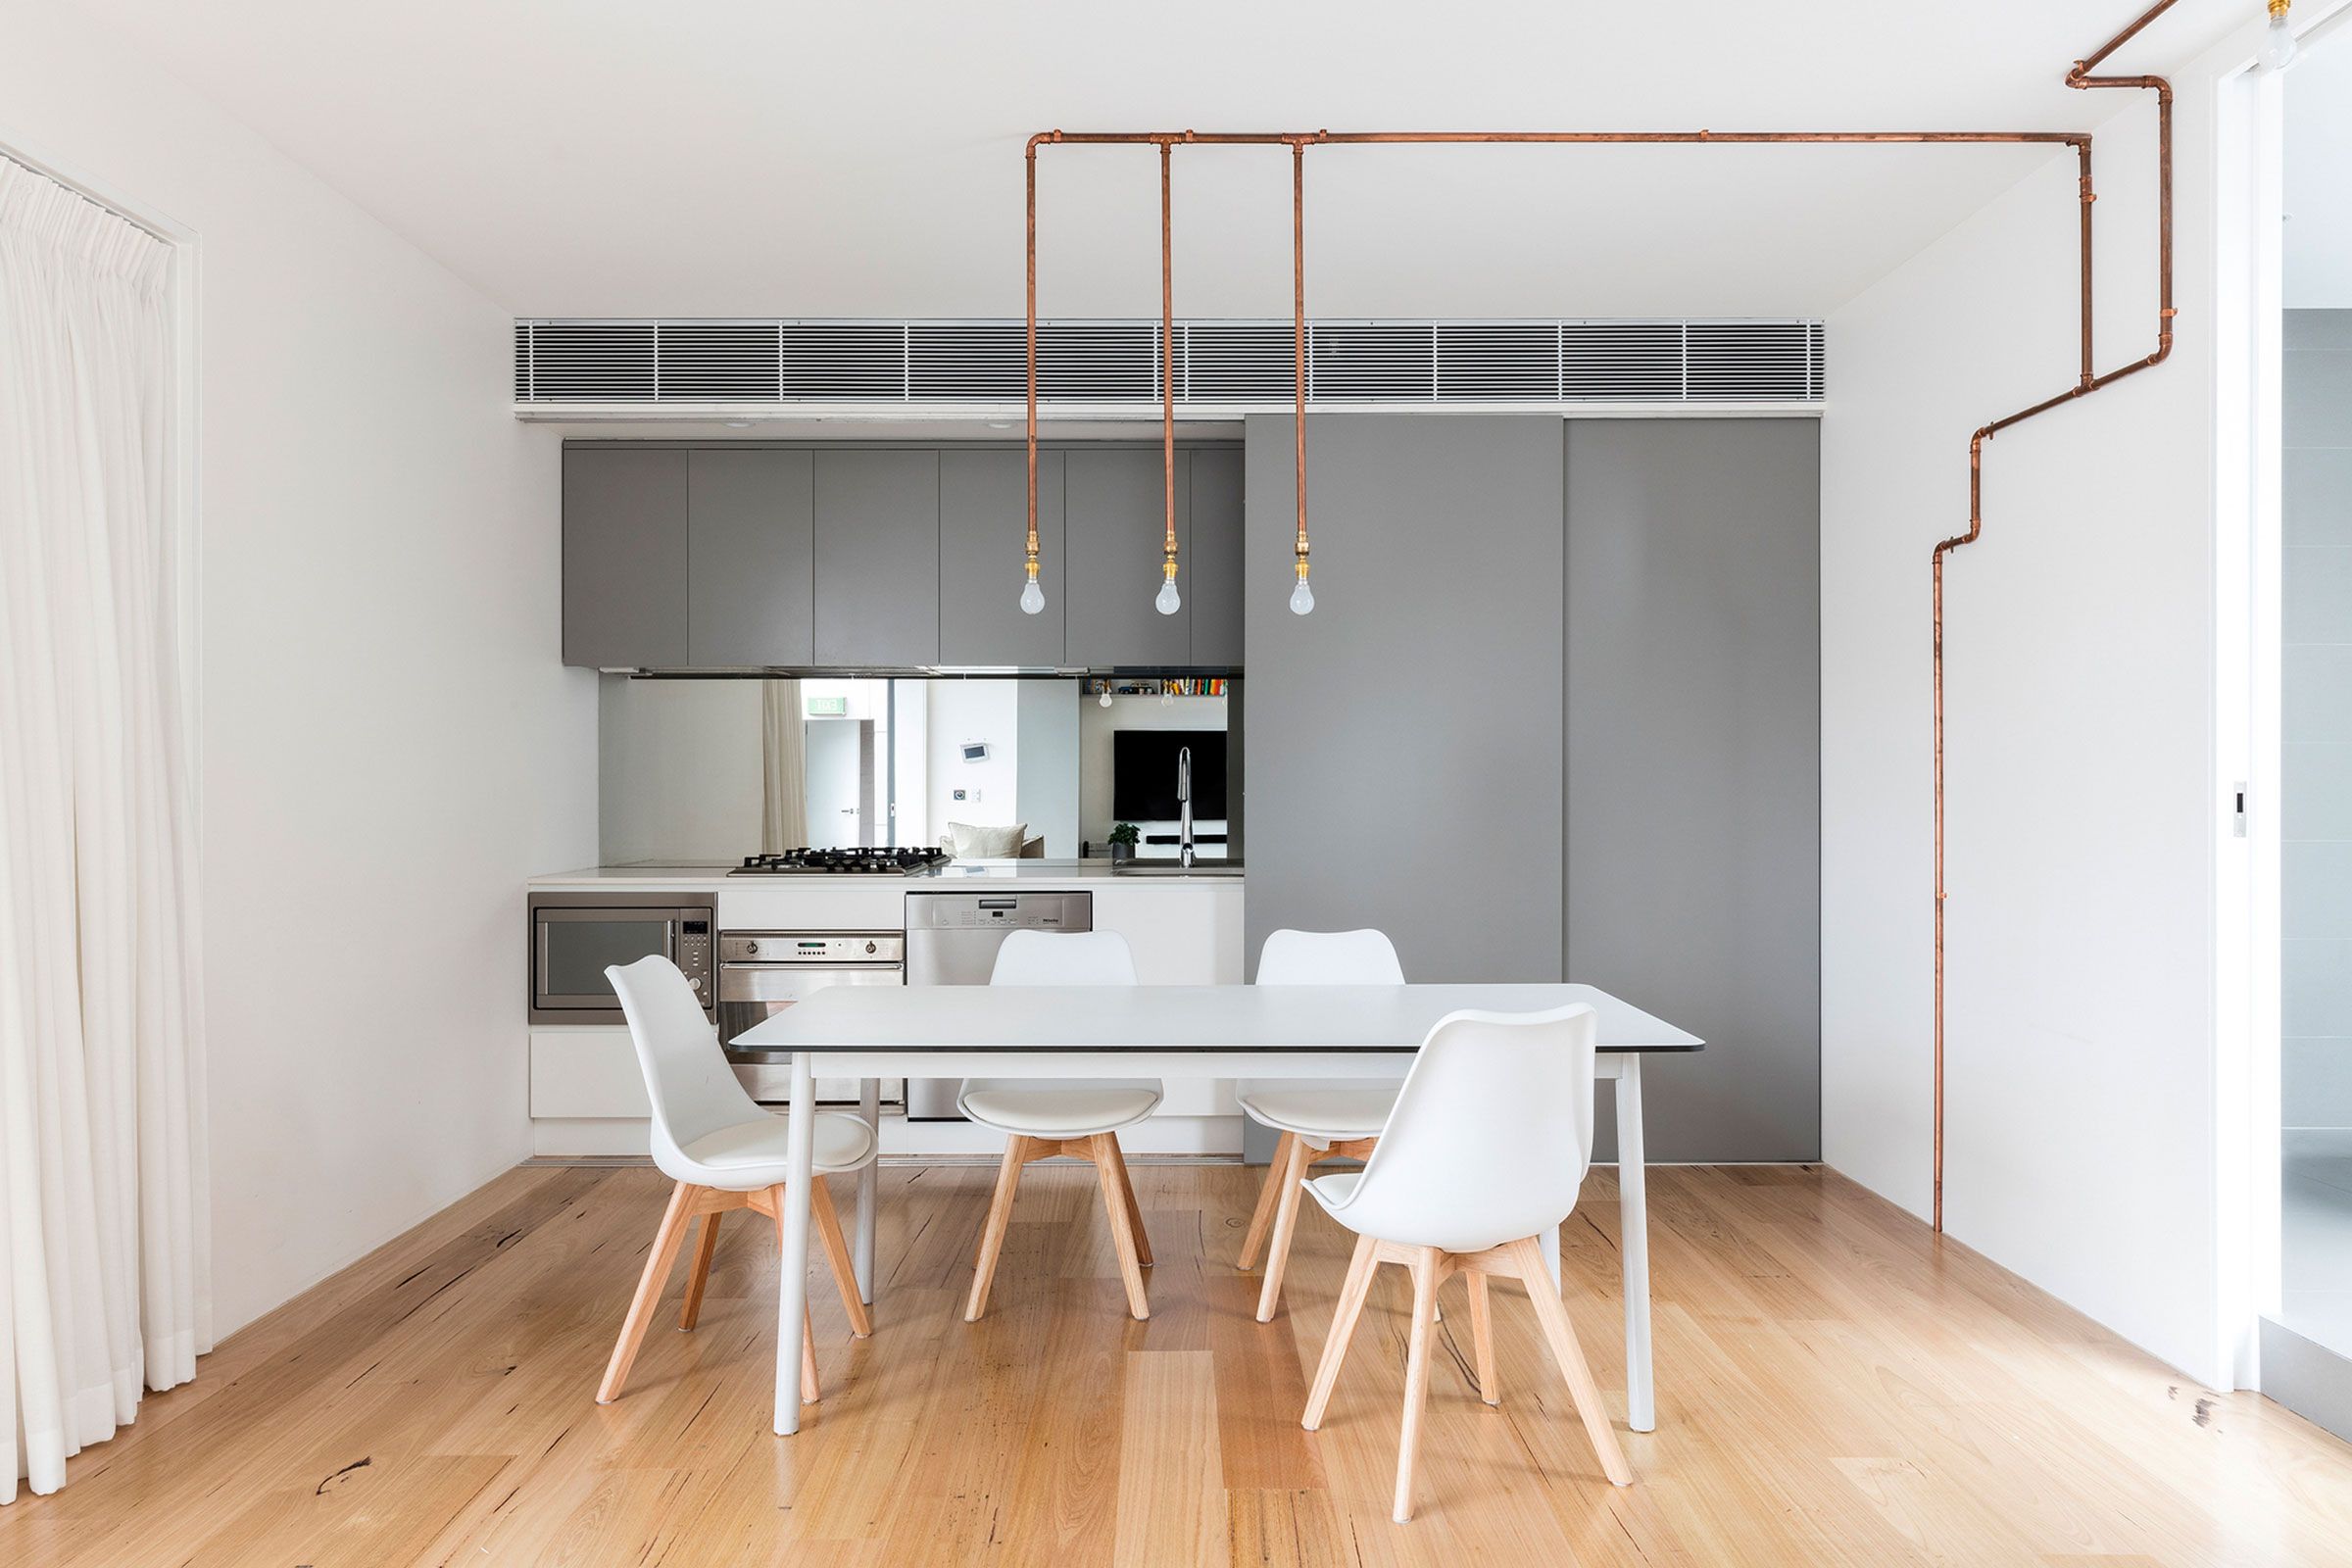 5 Well Designed Australian Kitchens Hey Gents